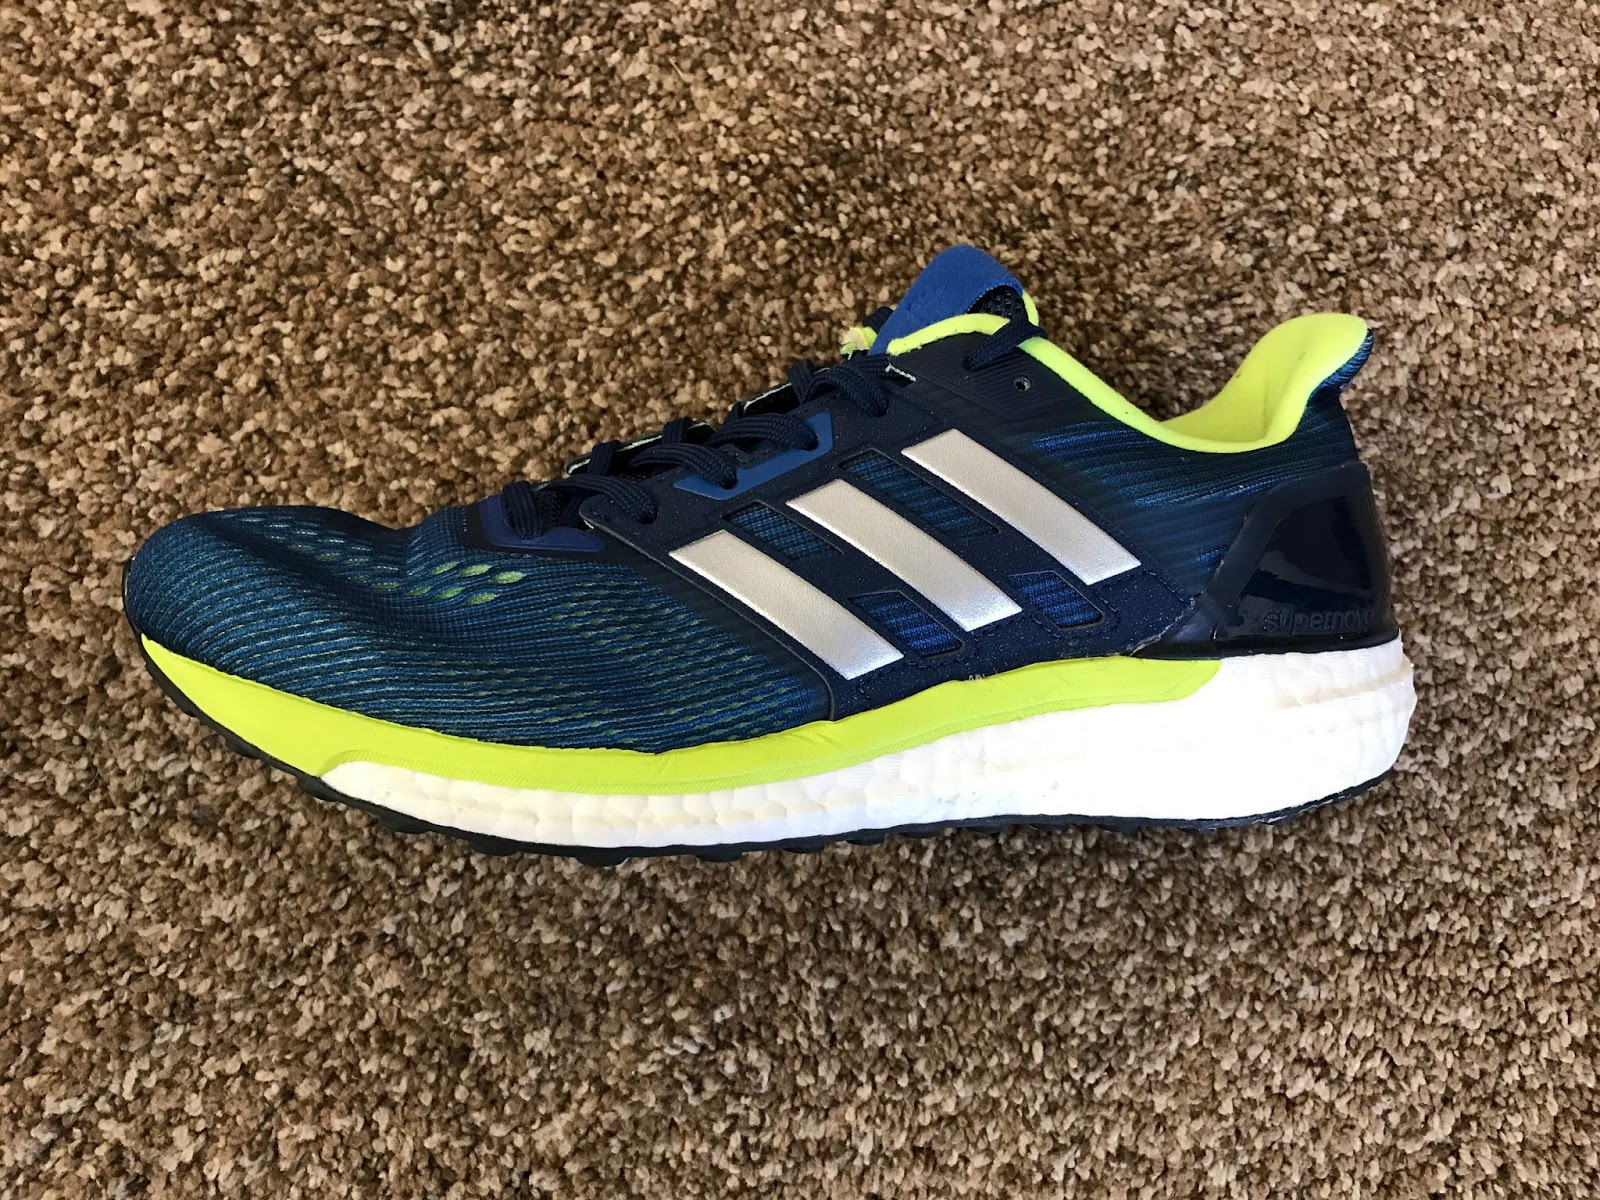 road trail run adidas supernova glide 9 review rebounding steady daily trainer with. Black Bedroom Furniture Sets. Home Design Ideas